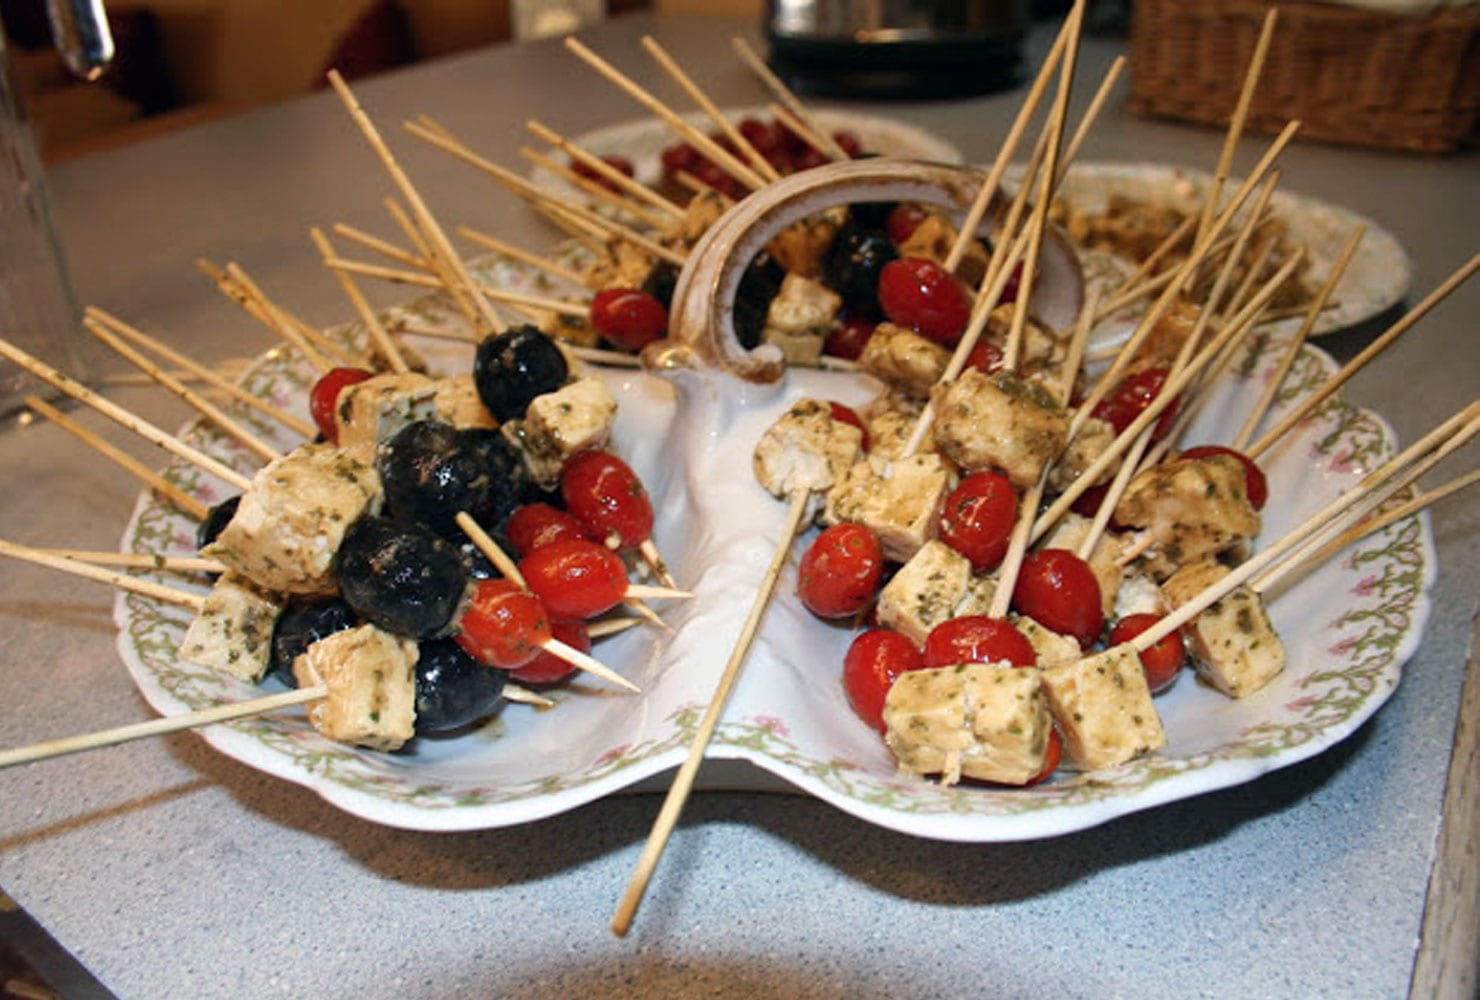 Feta, olive and tomato skewers